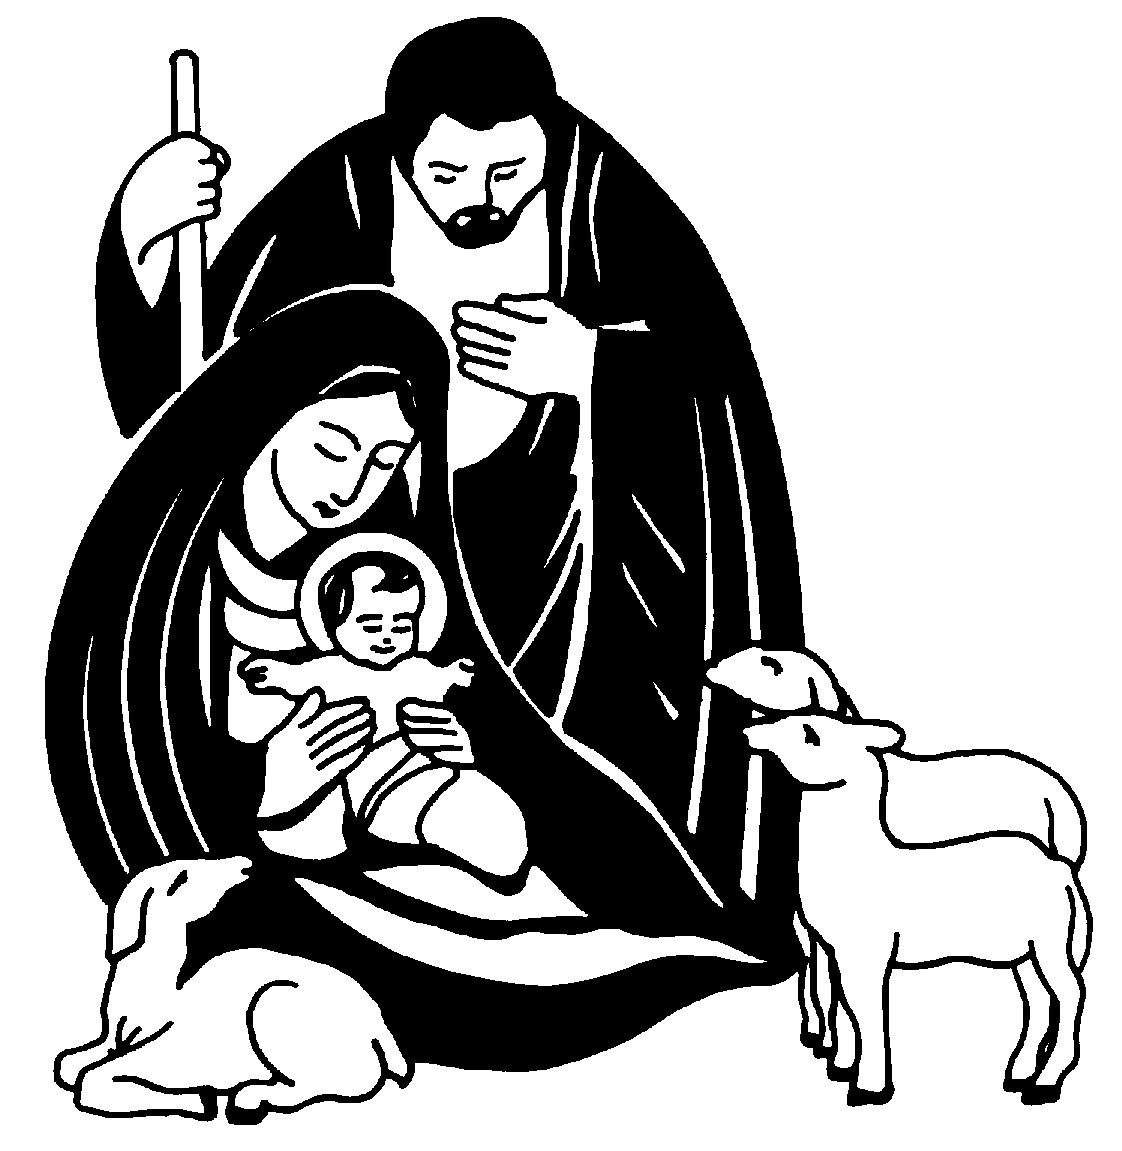 merry christmas nativity clipart clipart panda free clipart images rh clipartpanda com merry christmas nativity clipart christmas nativity clipart black and white